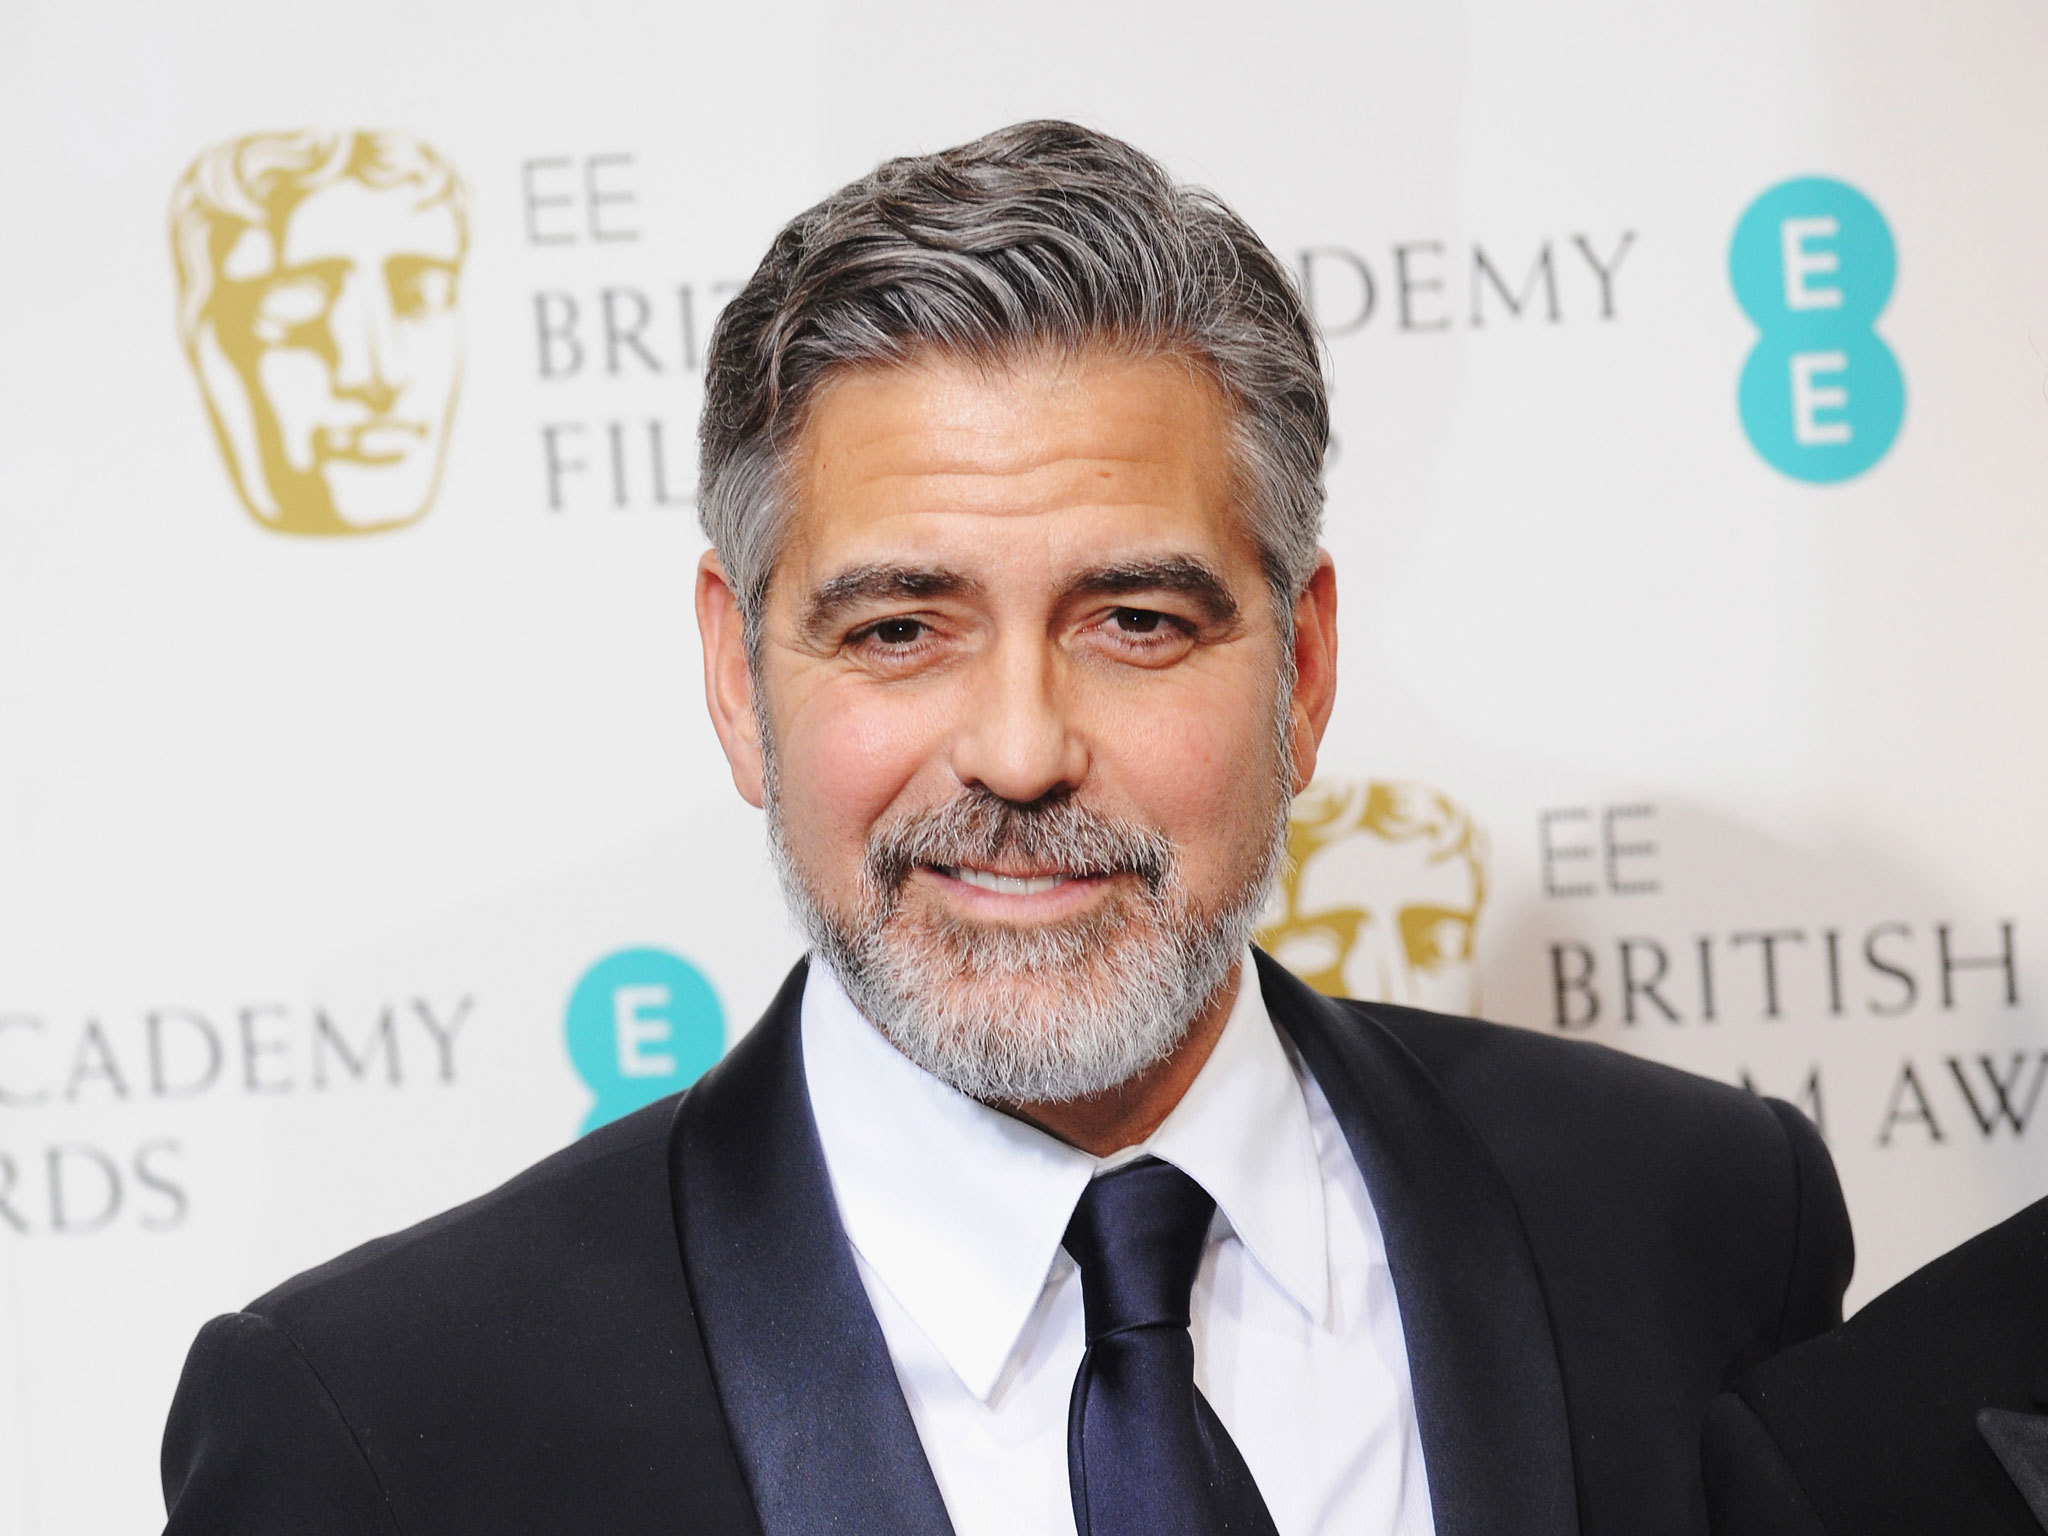 George Clooney Wallpaper For Computer